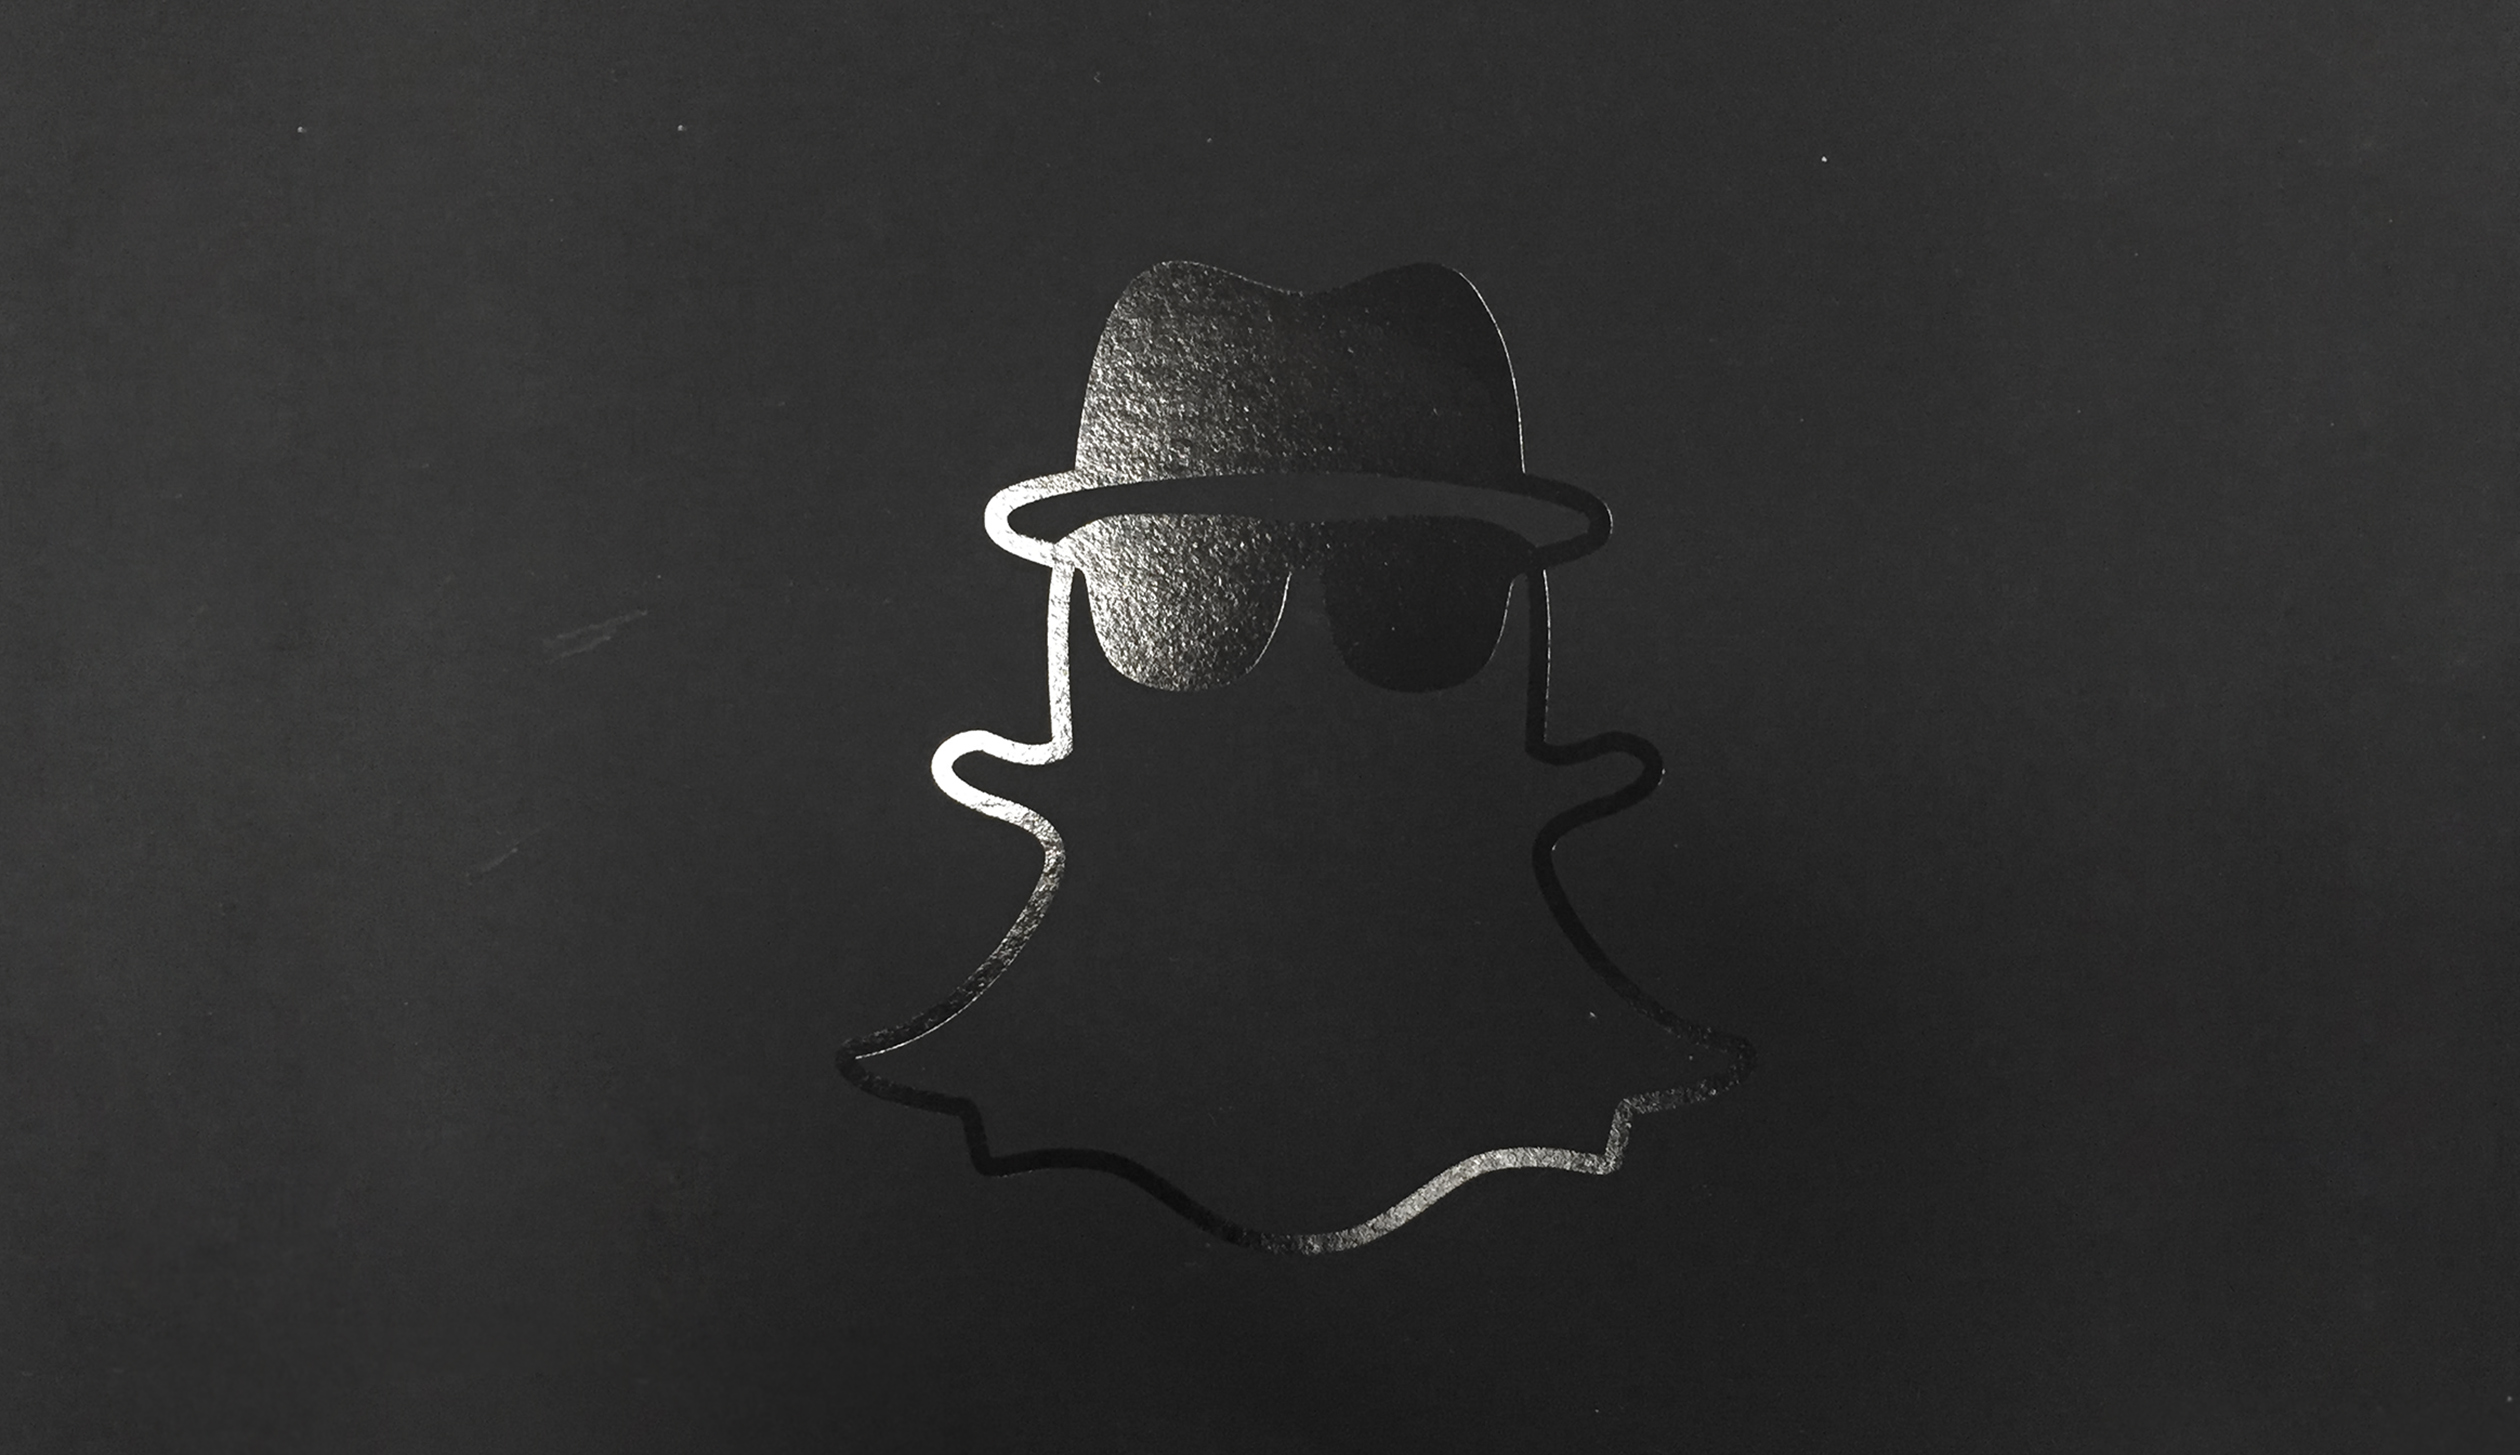 """Snapchat's mascot """"Ghostface Chillah,"""" the spy edition."""